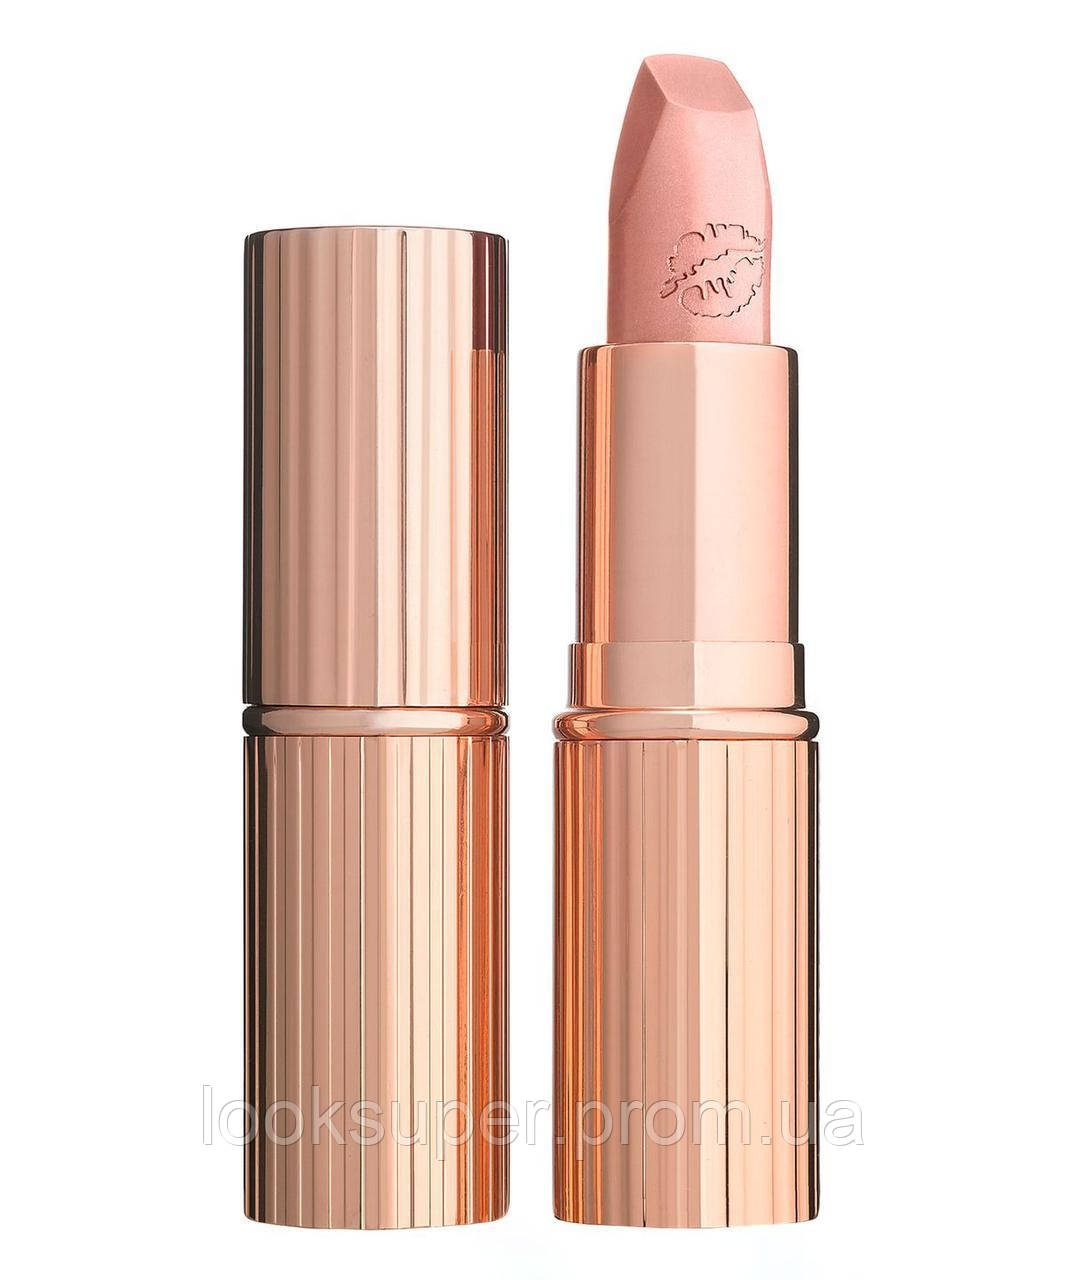 Помада Charlotte Tilbury  Hot Lips